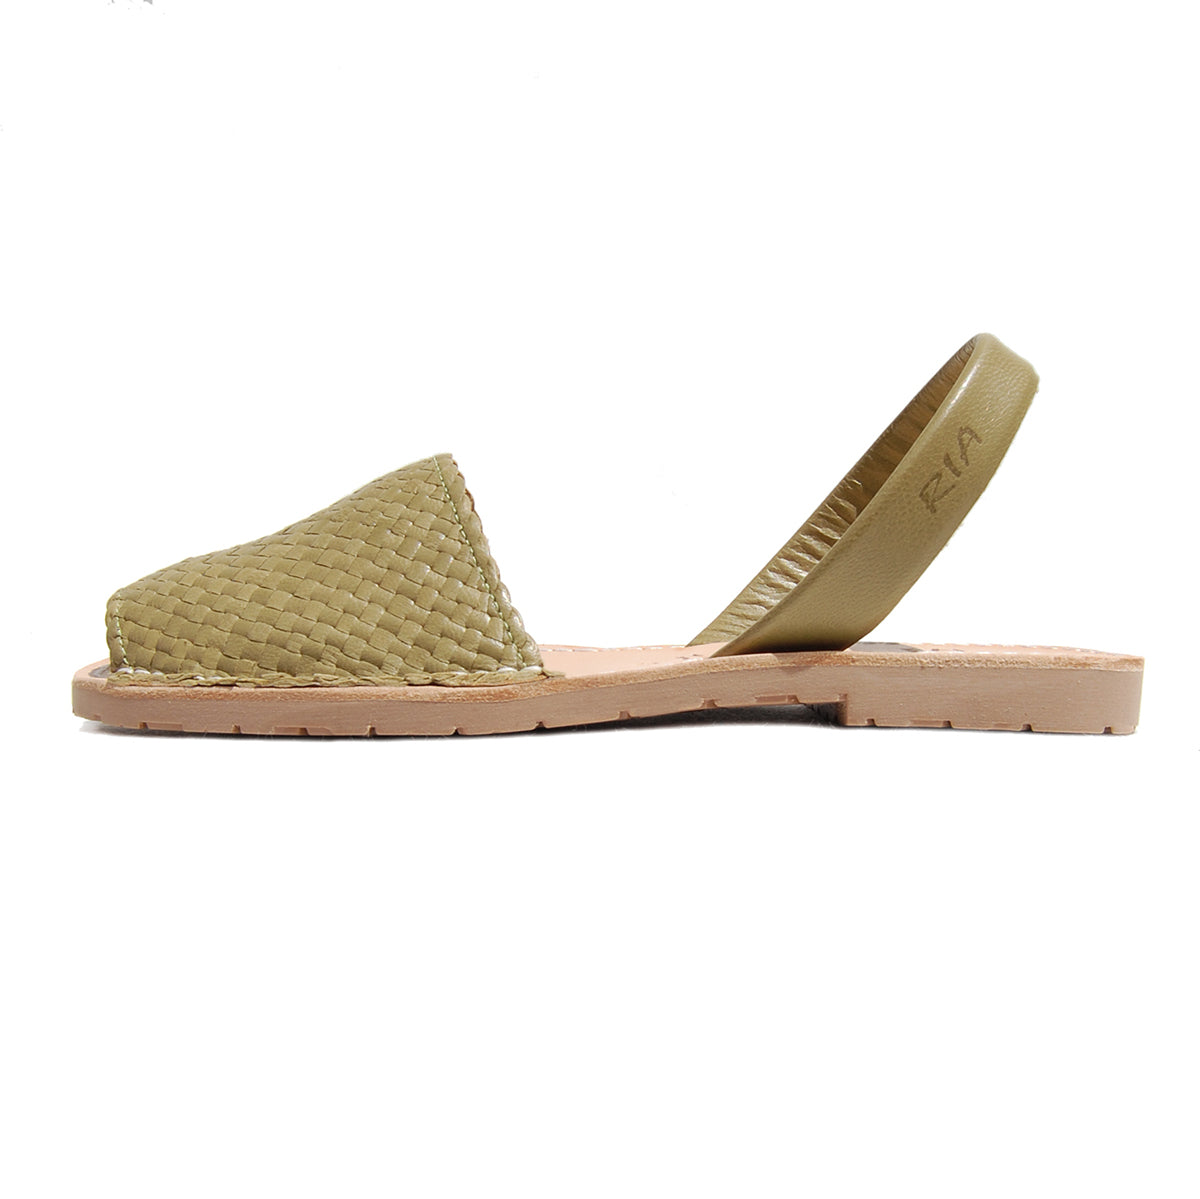 Avarcas Menorcan Sandals Fornells in Olive